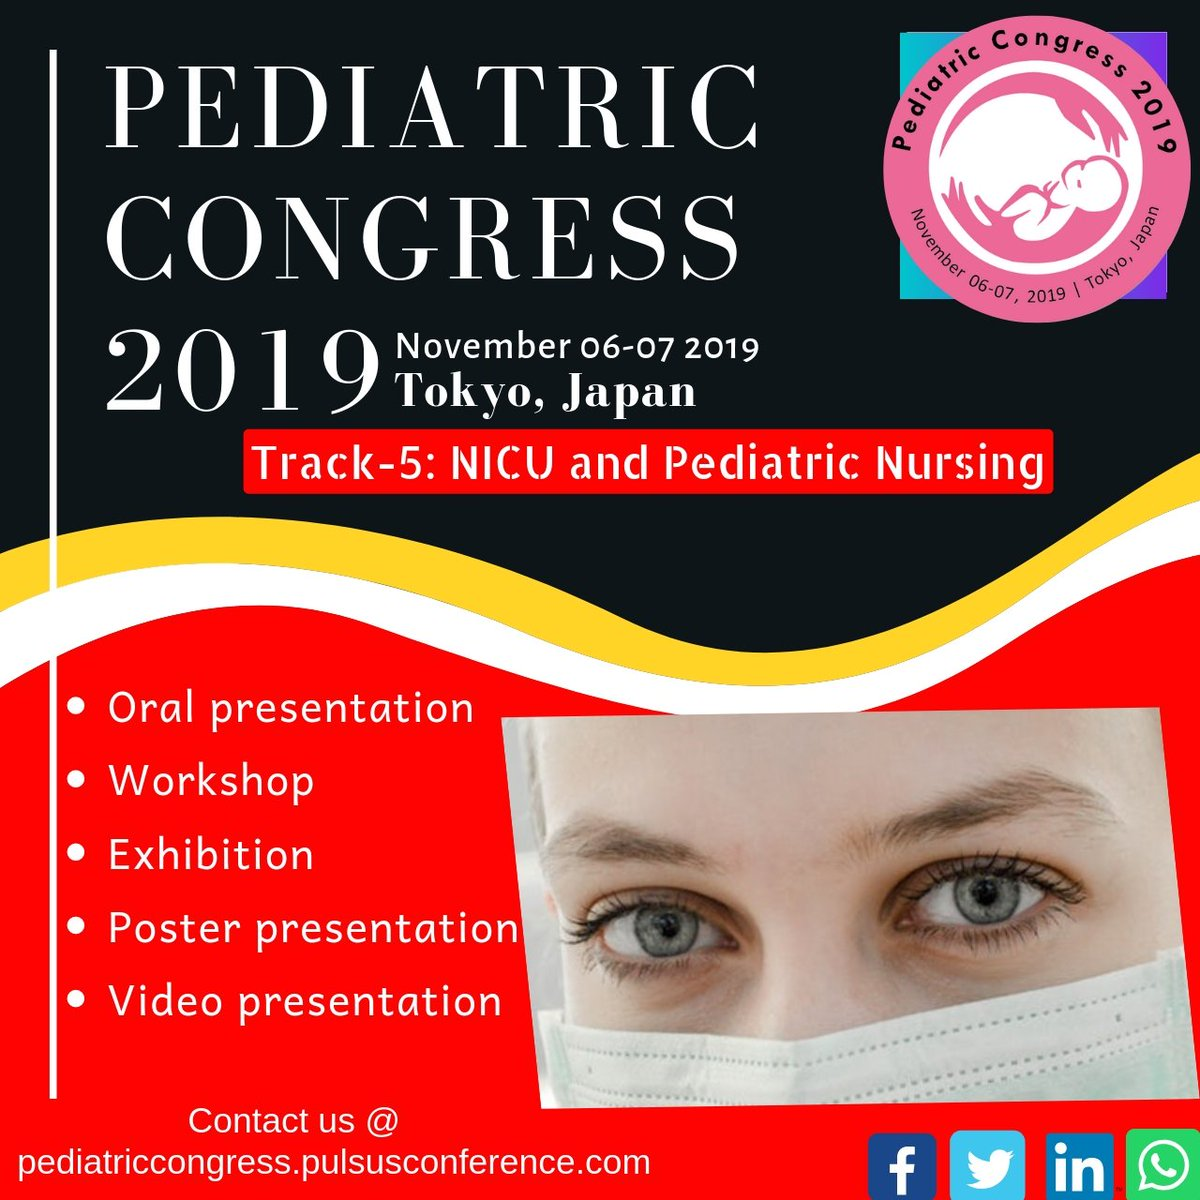 6dd22b8b6a0 #pediatriccongress2019 hashtag on Twitter